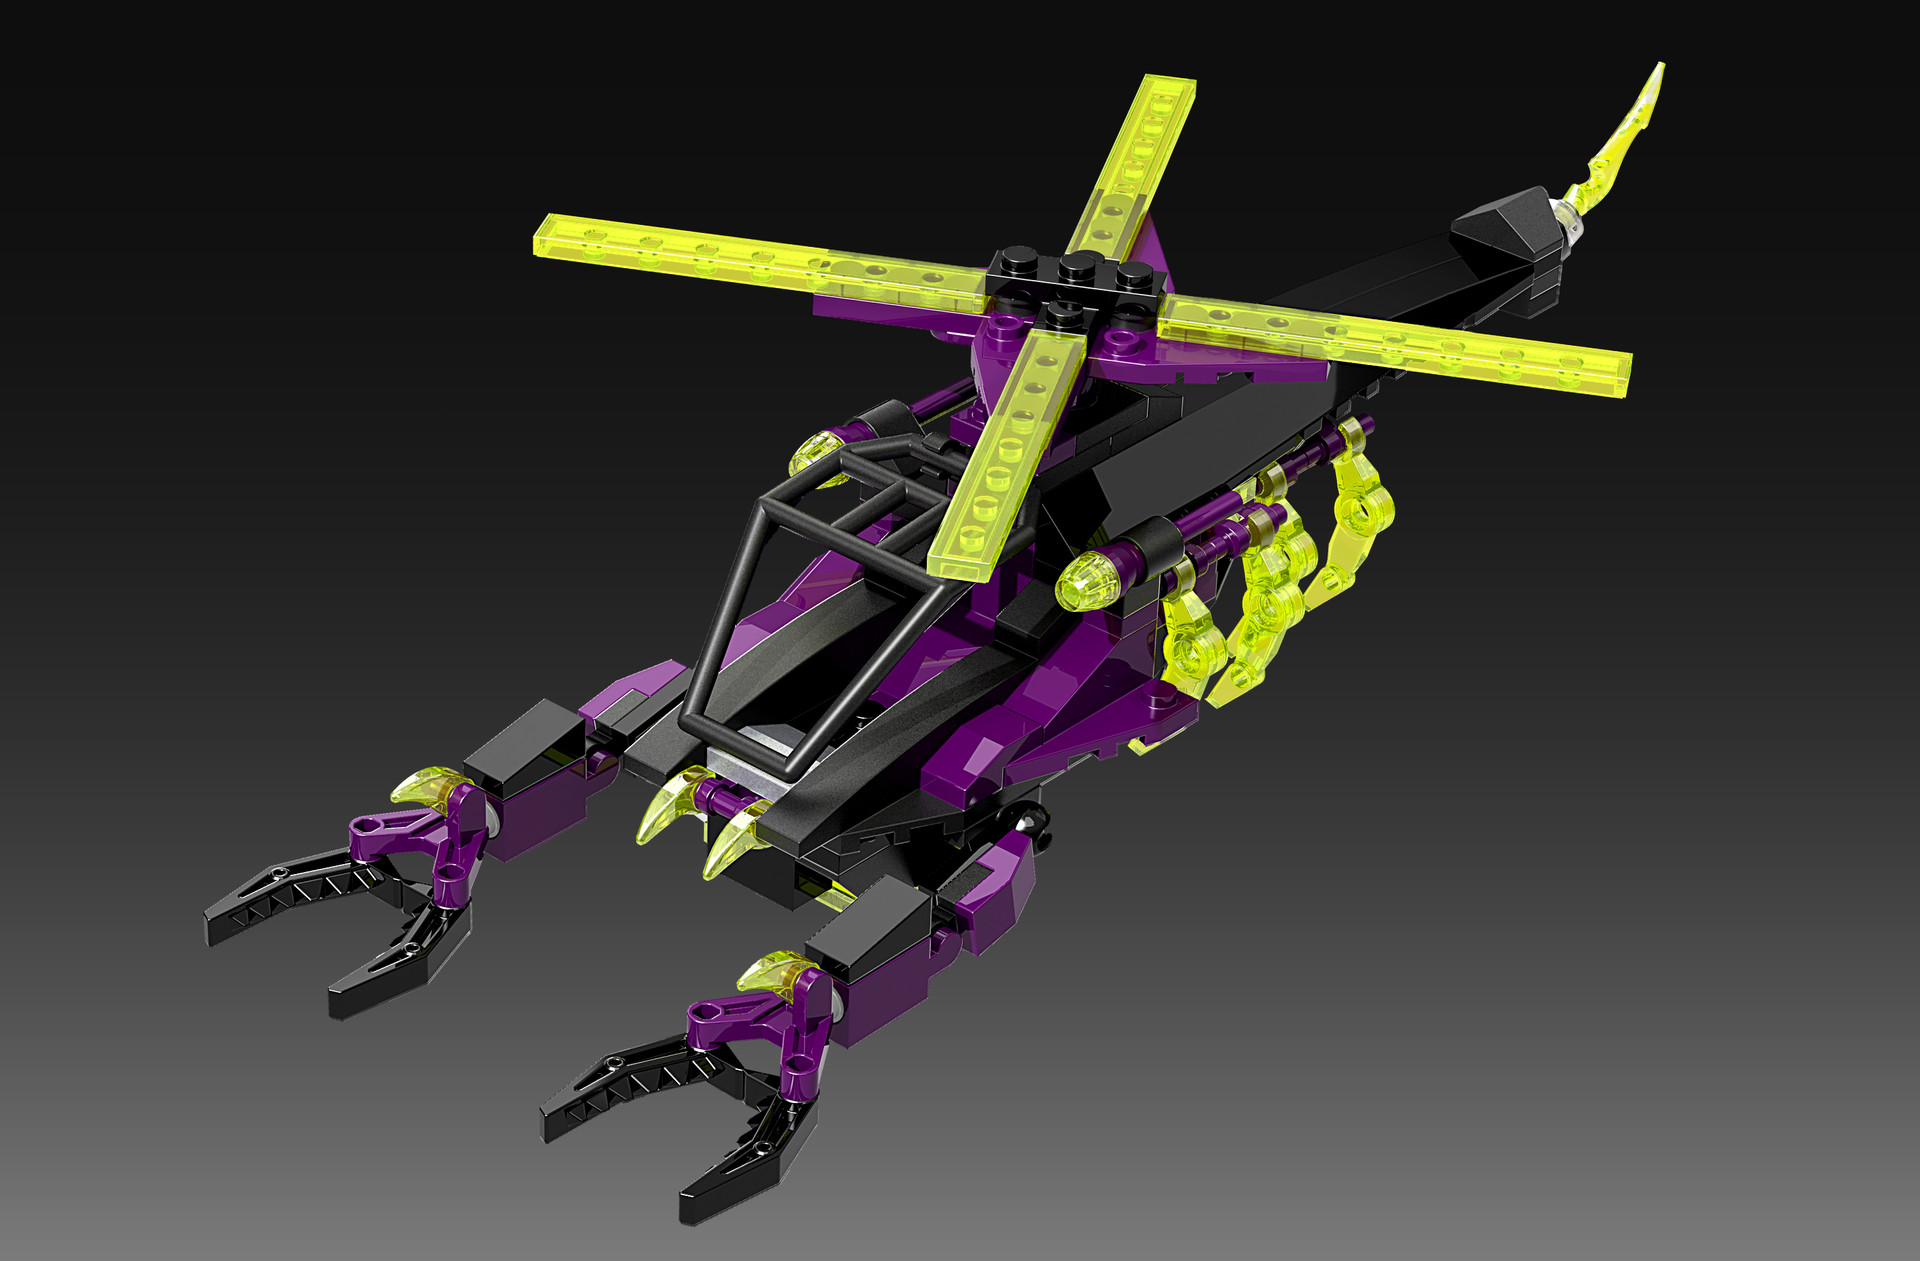 Marion wood helicopter neon render